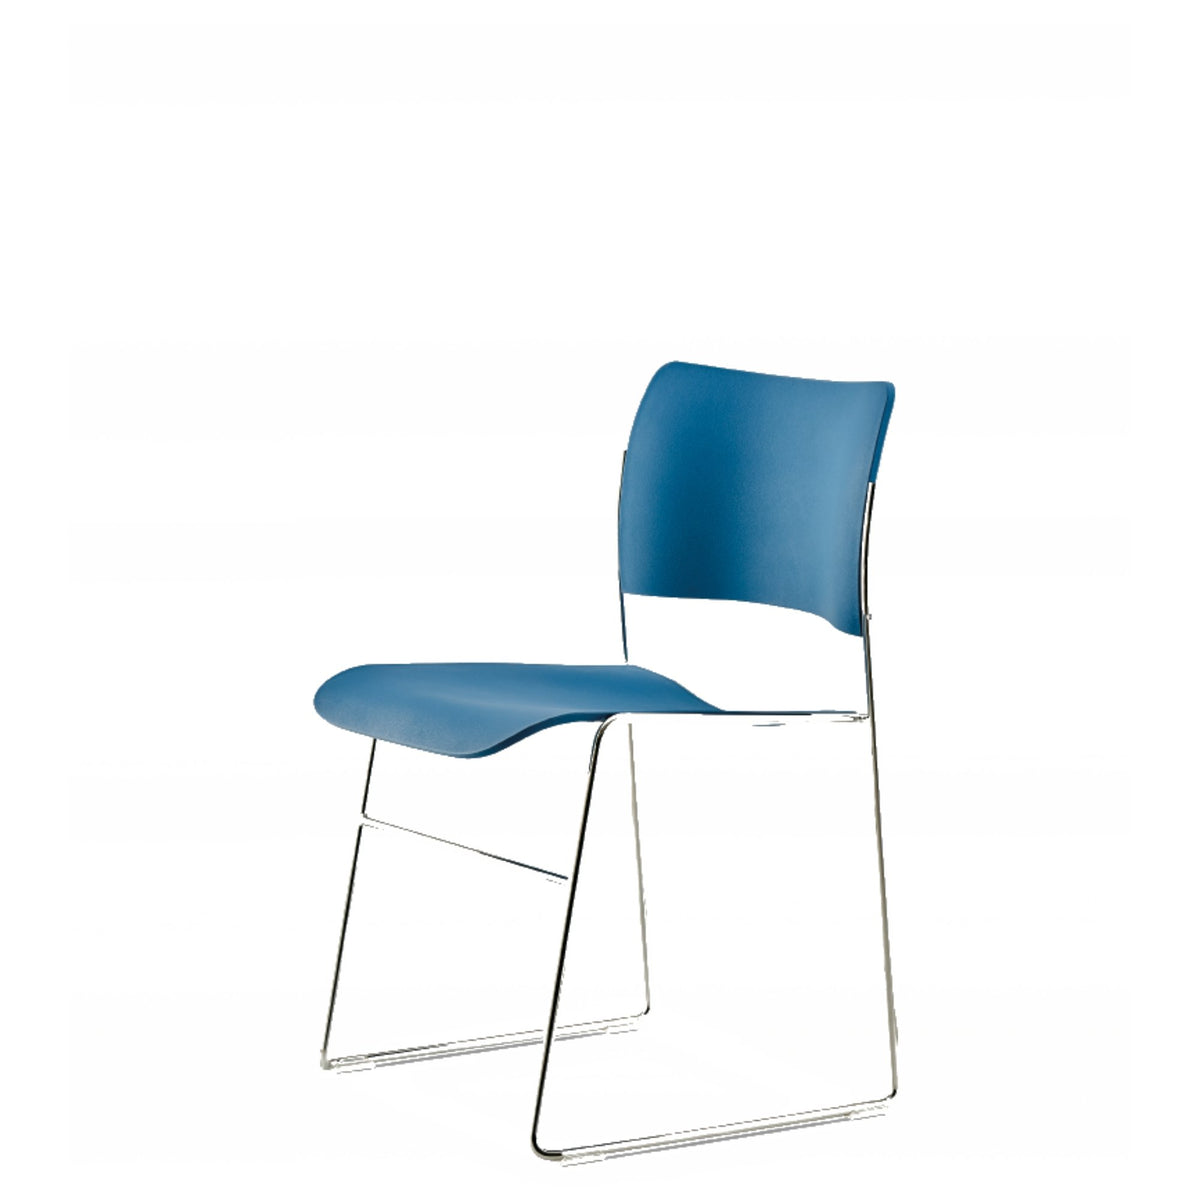 HOWE Plastic Resin Marine Blue Chair with Chrome Base by David Rowland